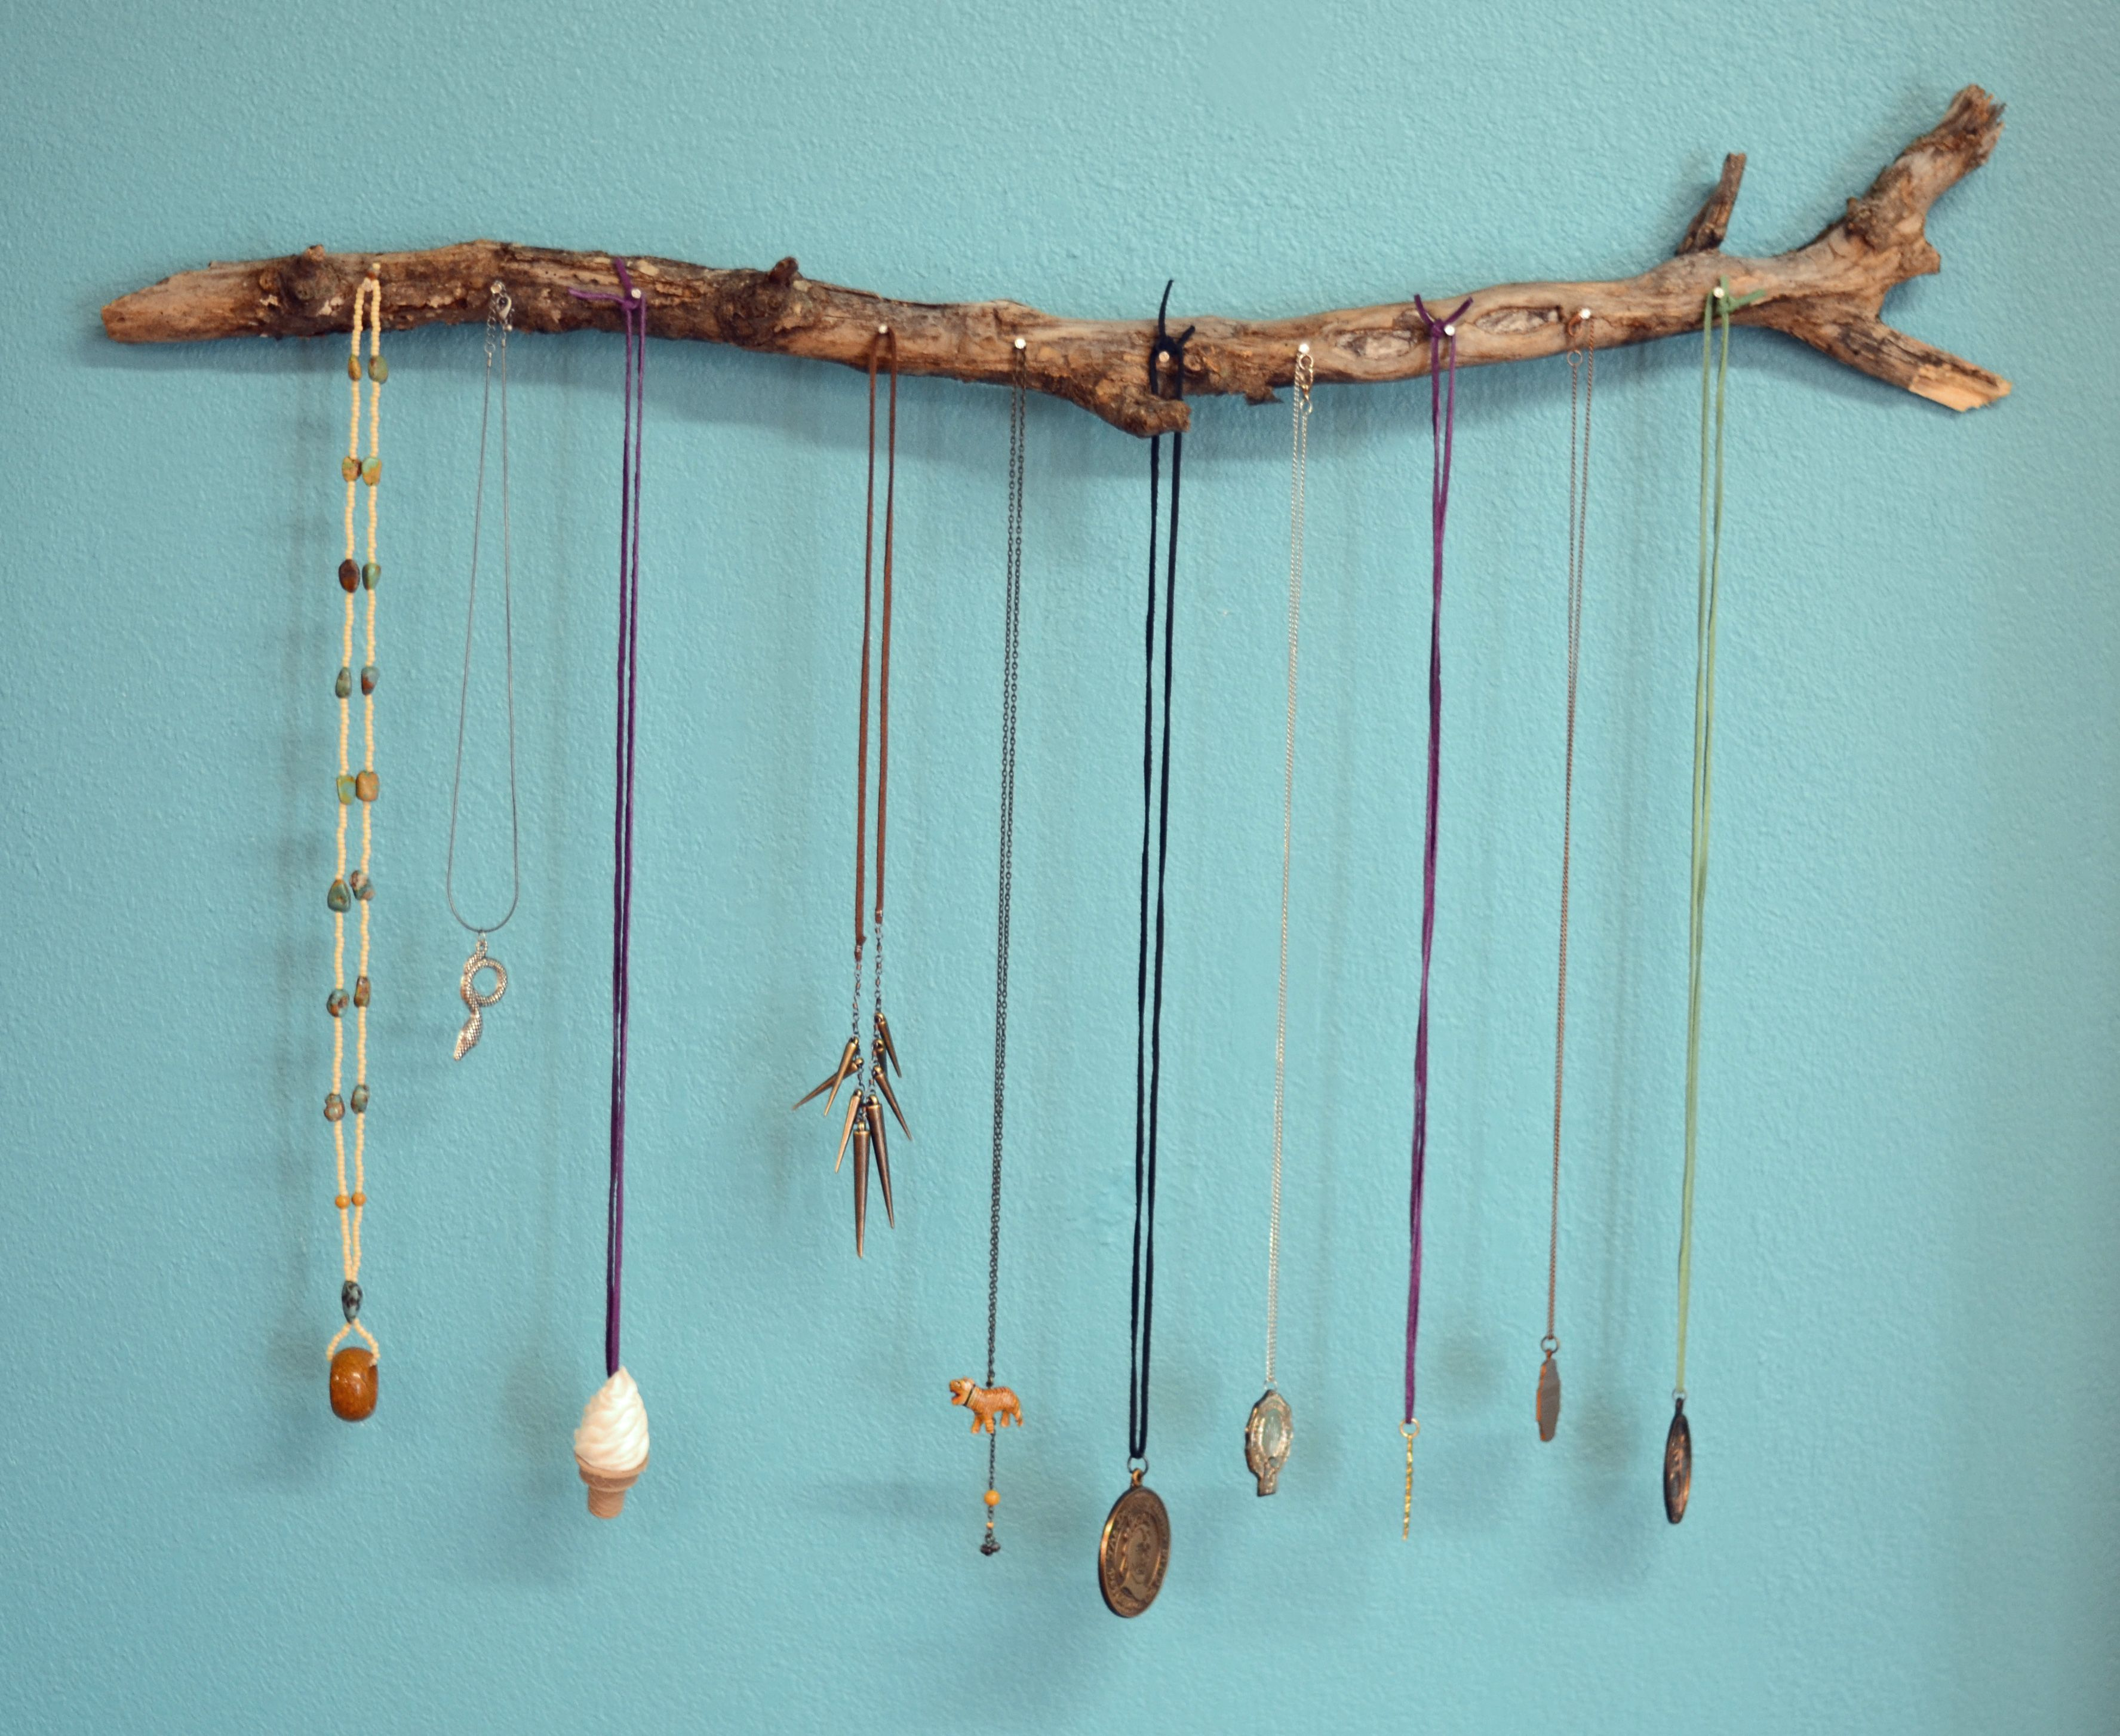 Pin By Melanie De Oliveira On Crafty Things Diy Jewelry Holder Necklace Creative Displays